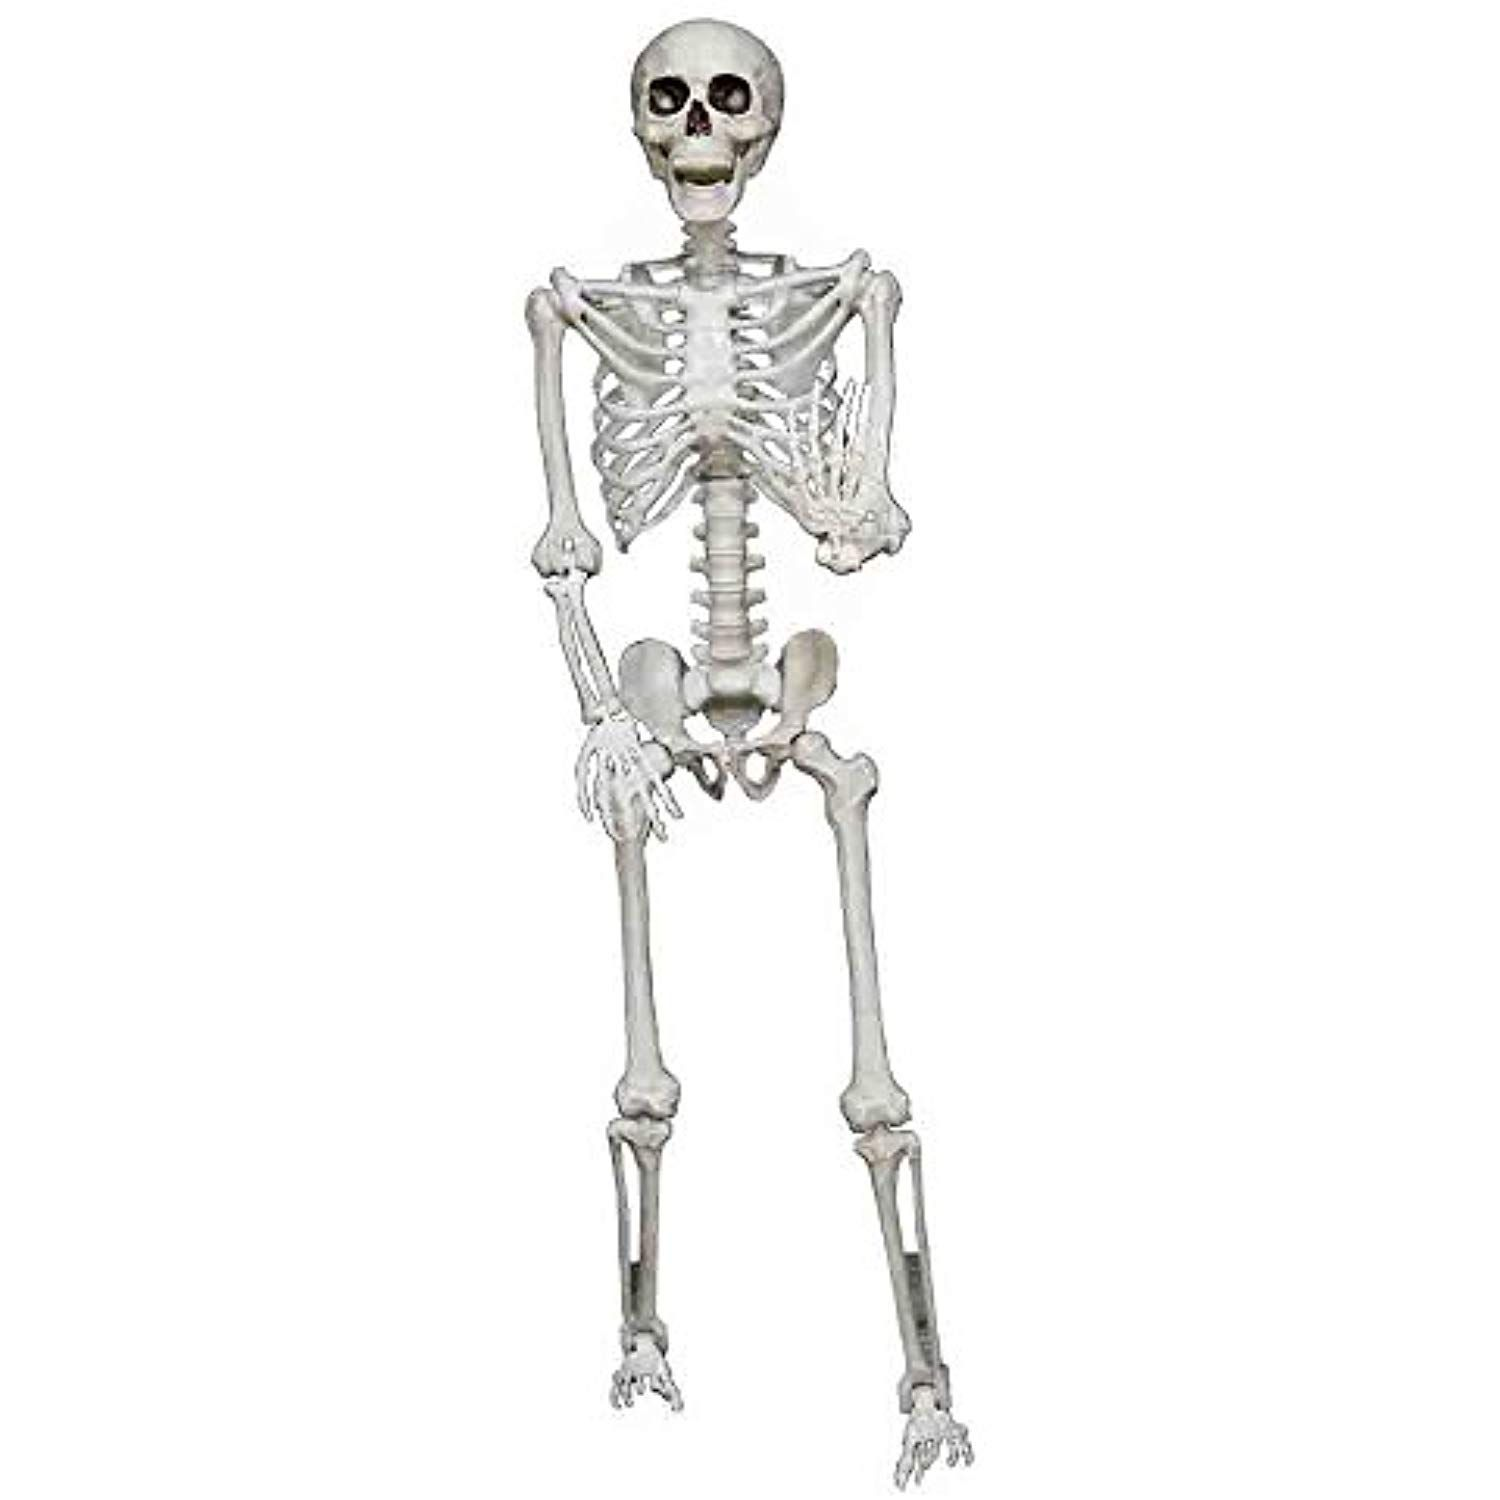 Realistic Pose and Hold Lifesize Skeleton Prop You can get